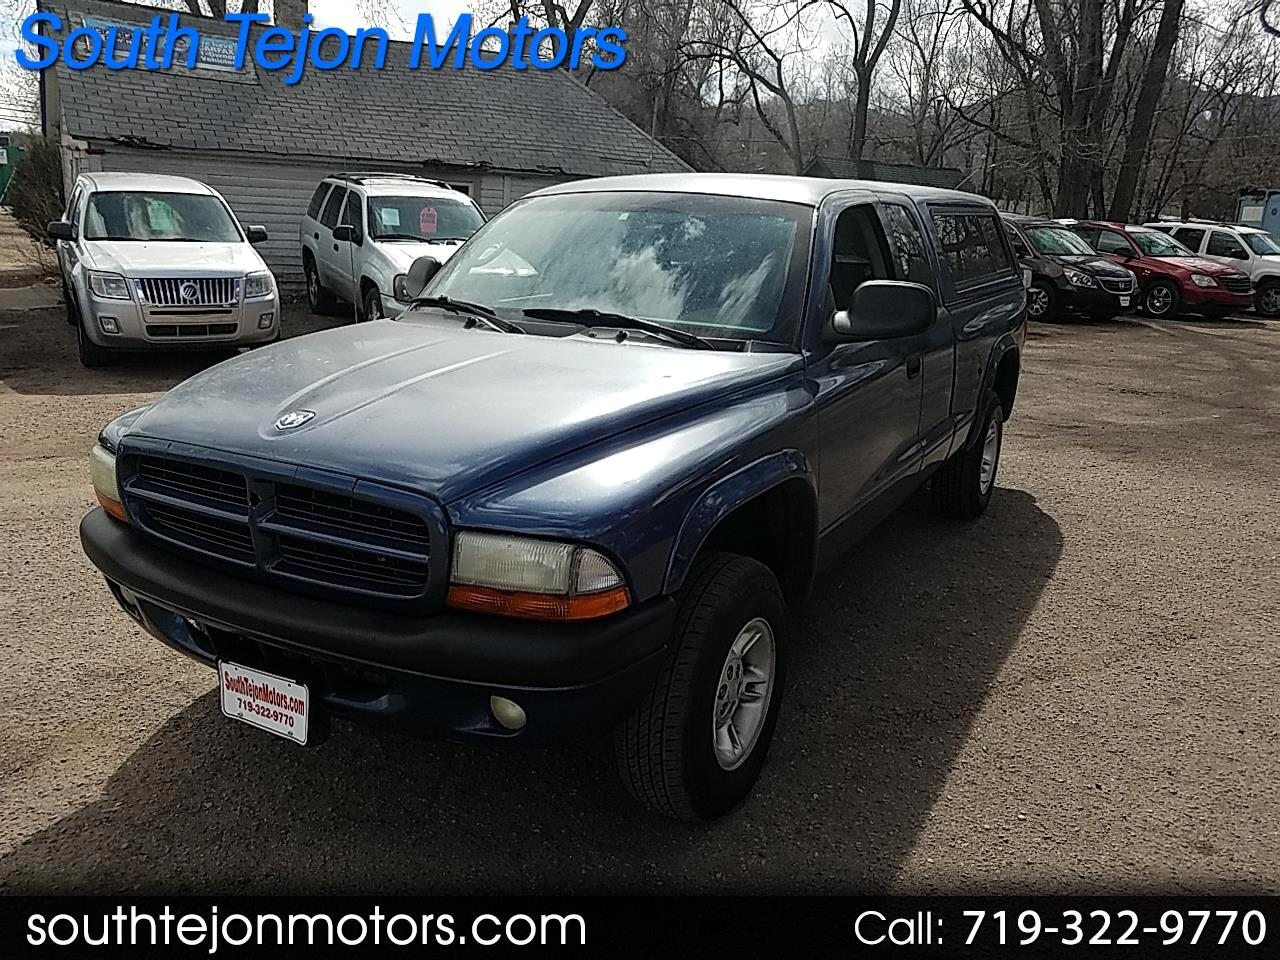 2002 Dodge Dakota Sport Club Cab 4WD